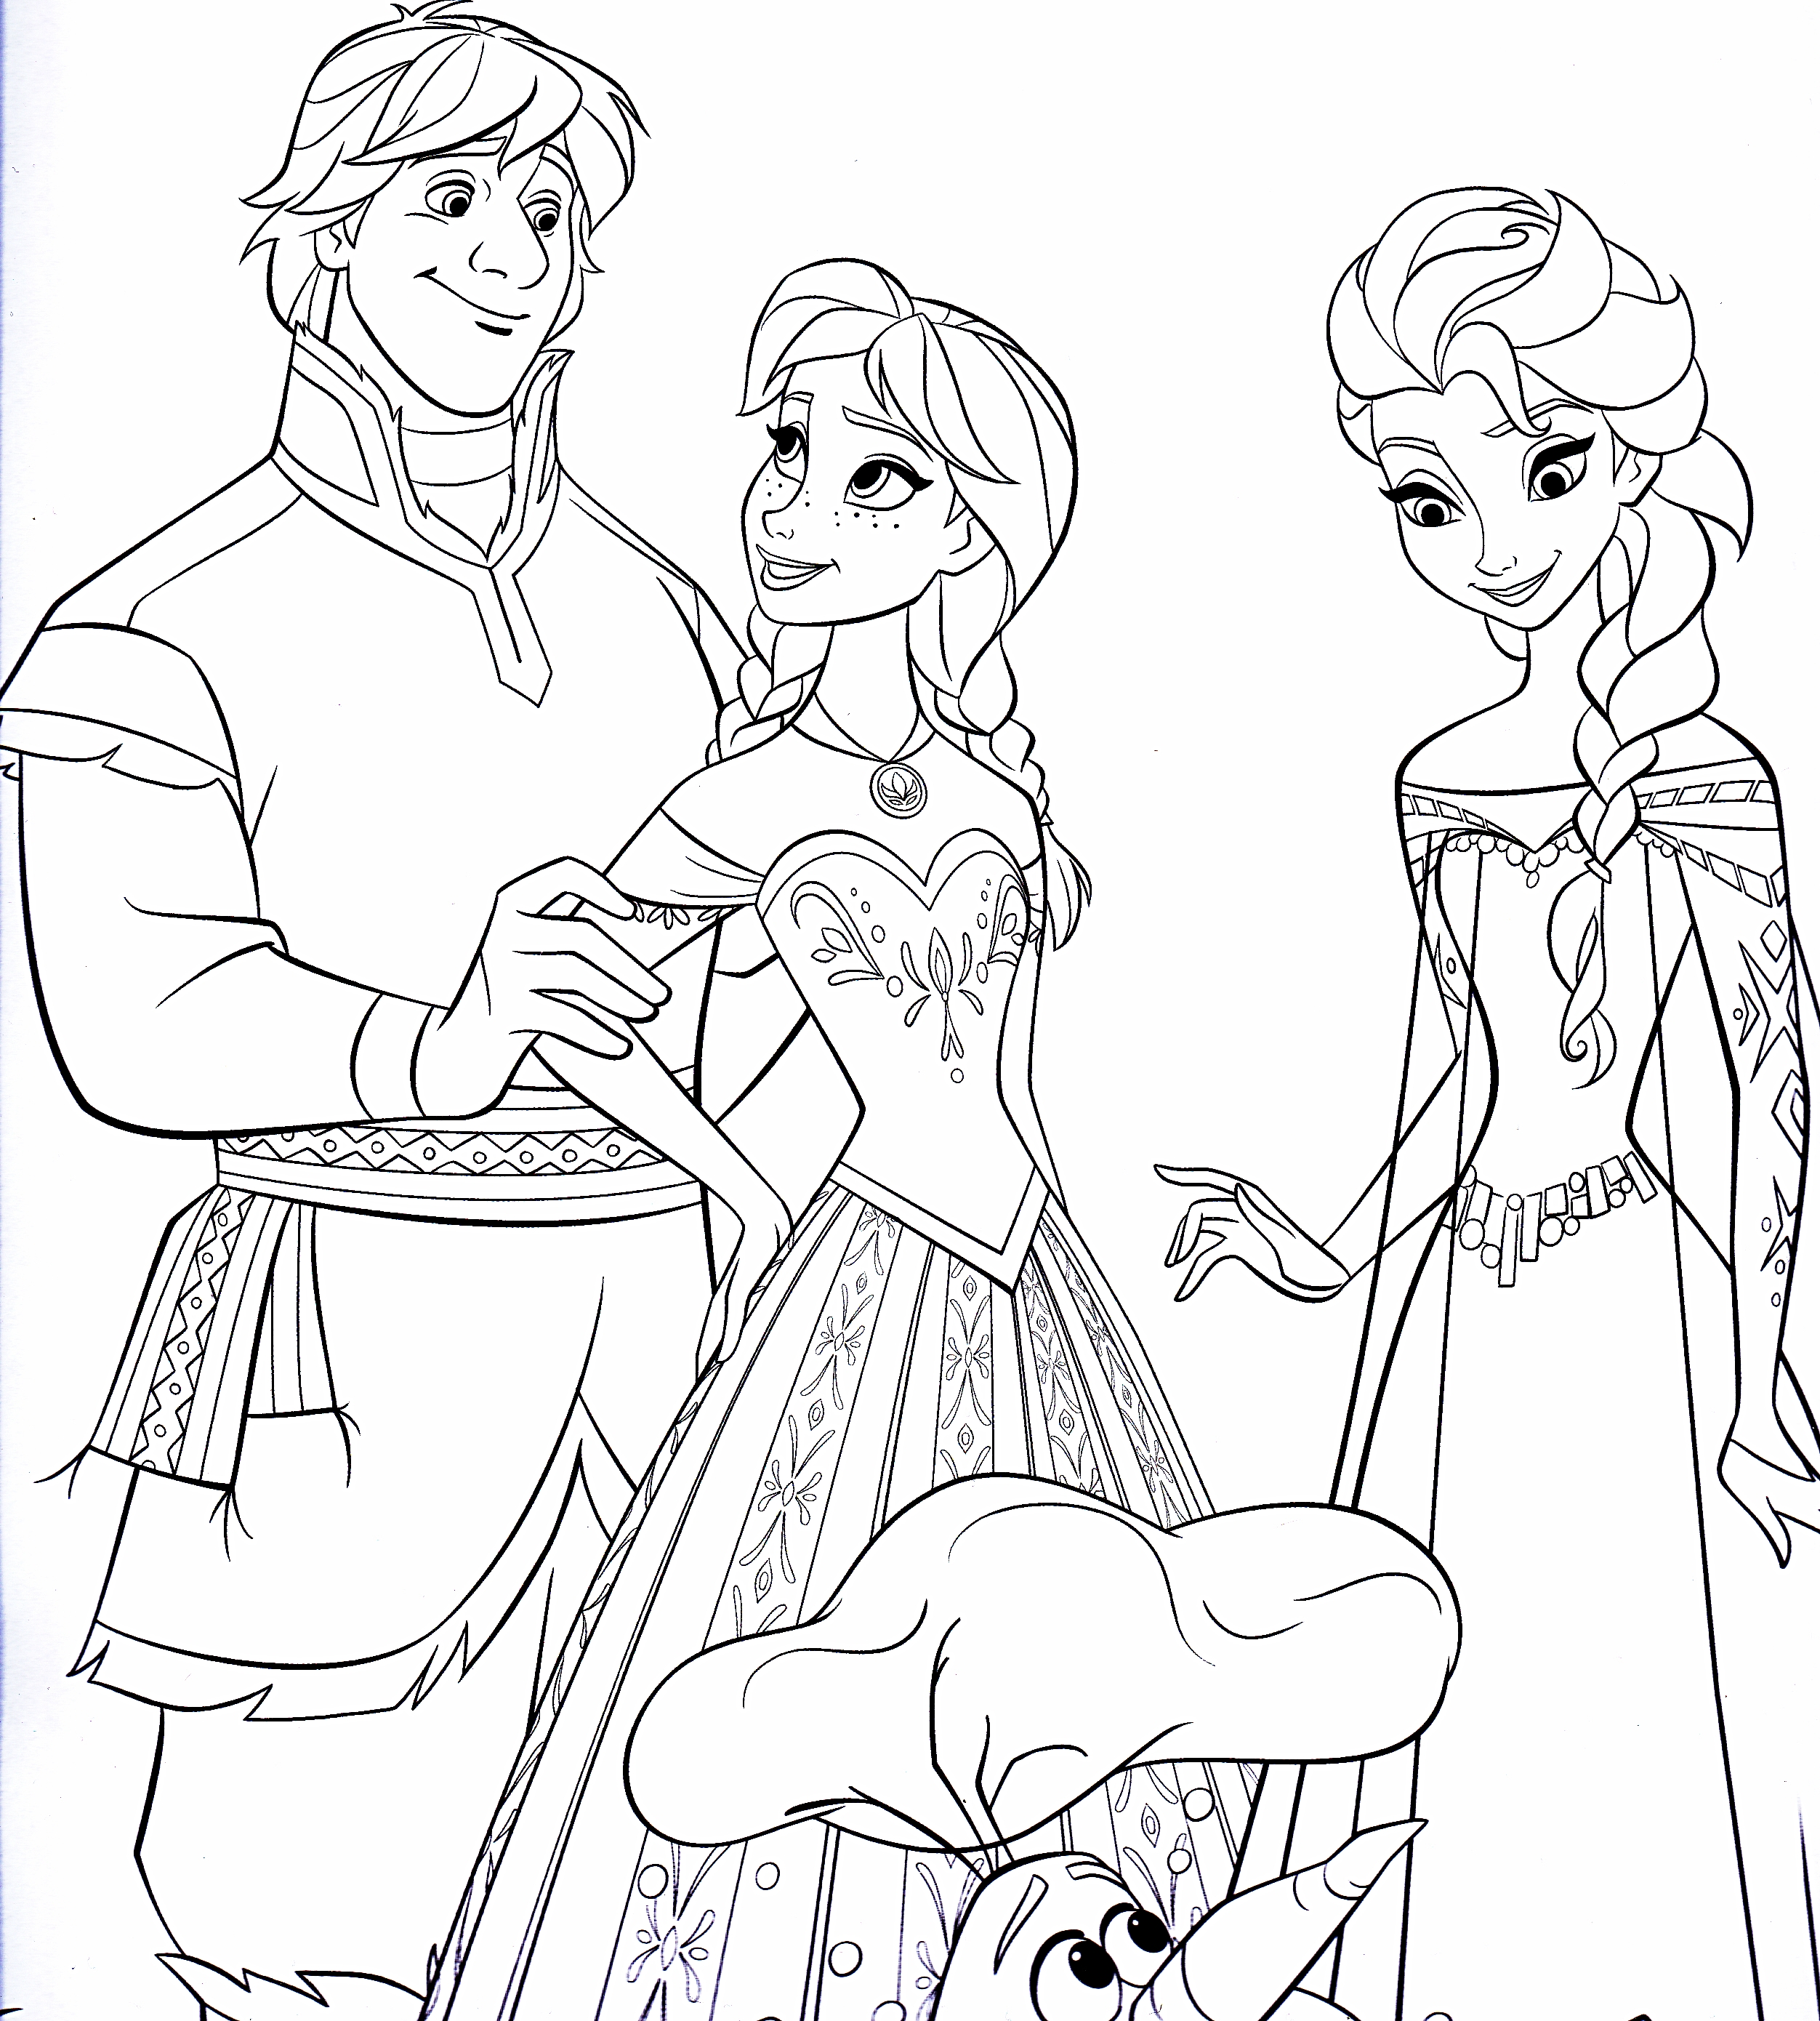 Walt ডিজনি Coloring Pages - Kristoff Bjorgman, Princess Anna, কুইন Elsa & Olaf